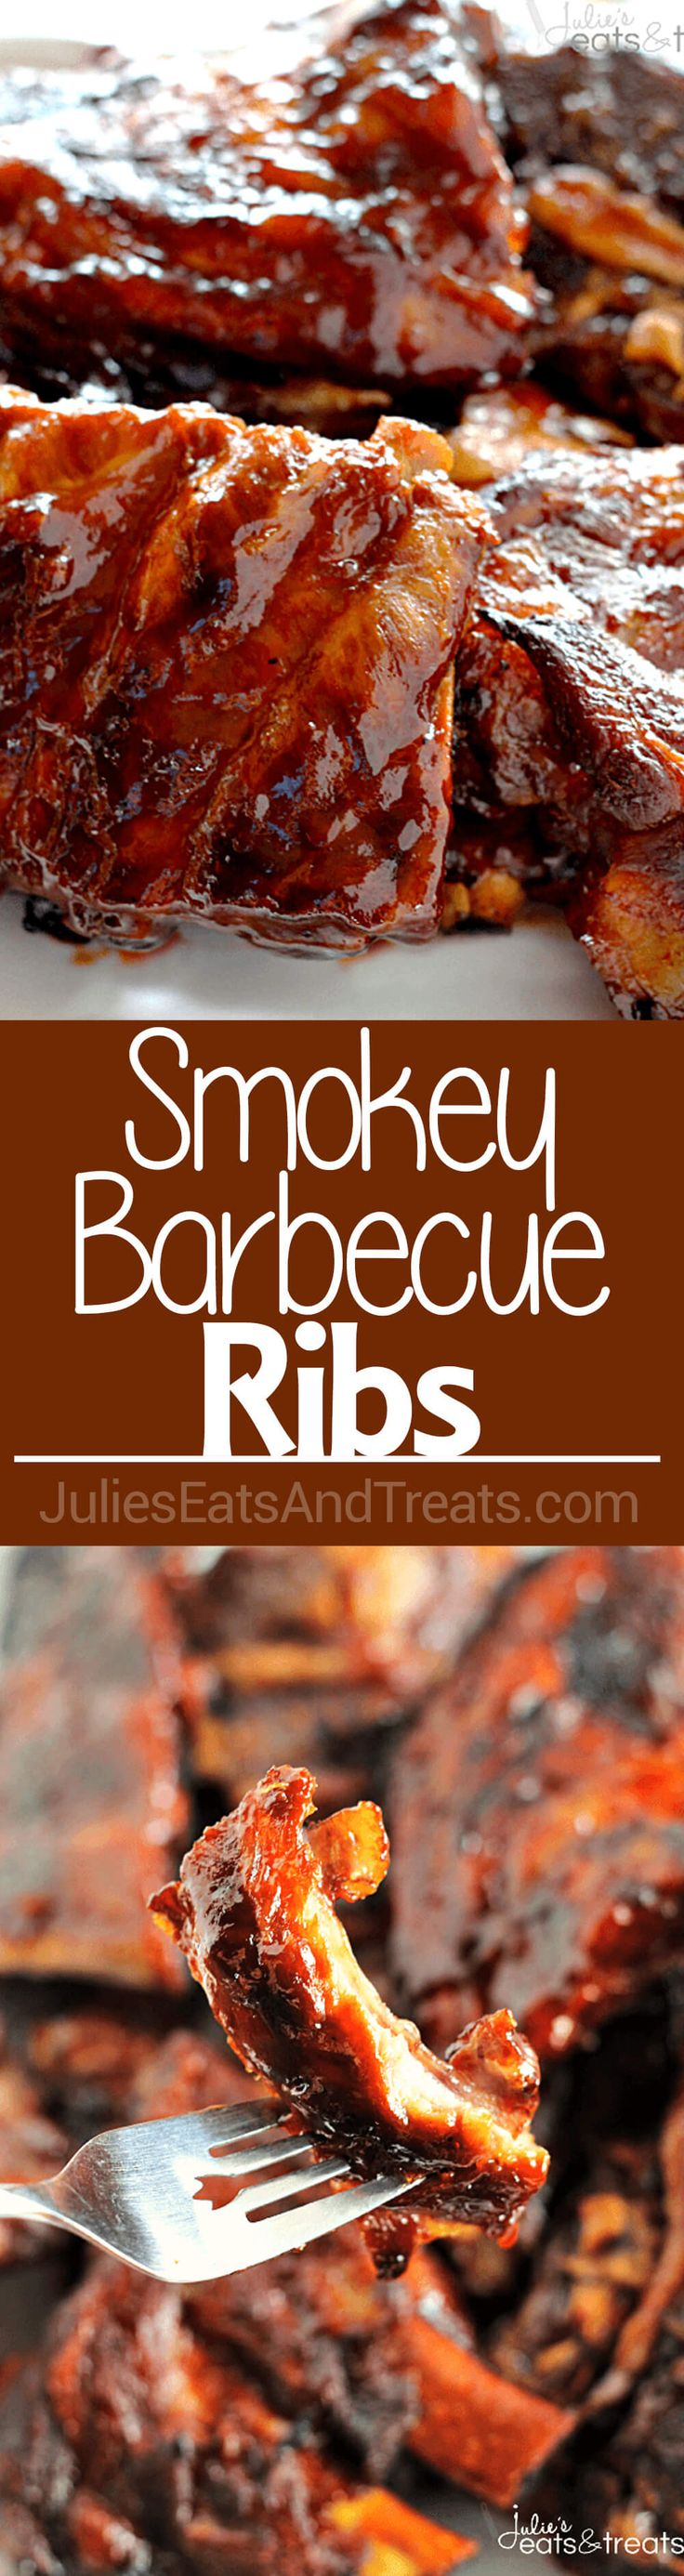 Smokey Barbecue Ribs ~ Smokey, Tender Ribs Loaded in a Homemade Barbecue Sauce…